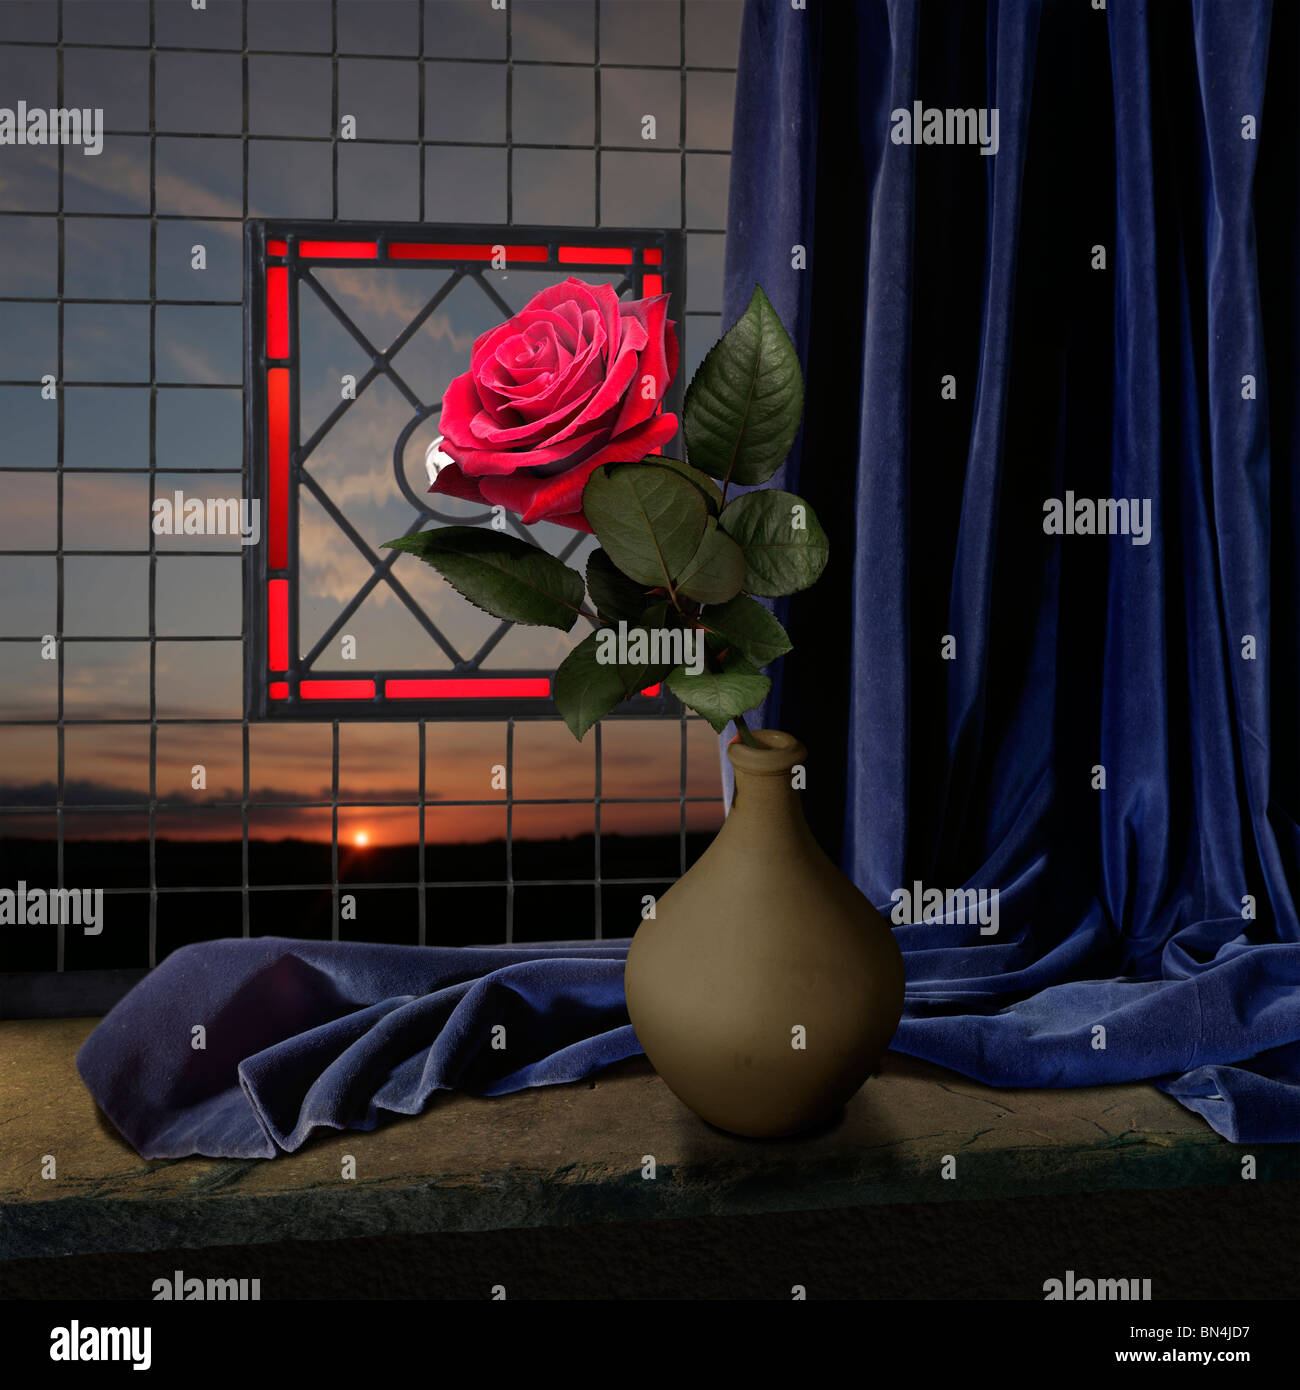 red rose and blue curtain on a window seal with sunset - Stock Image